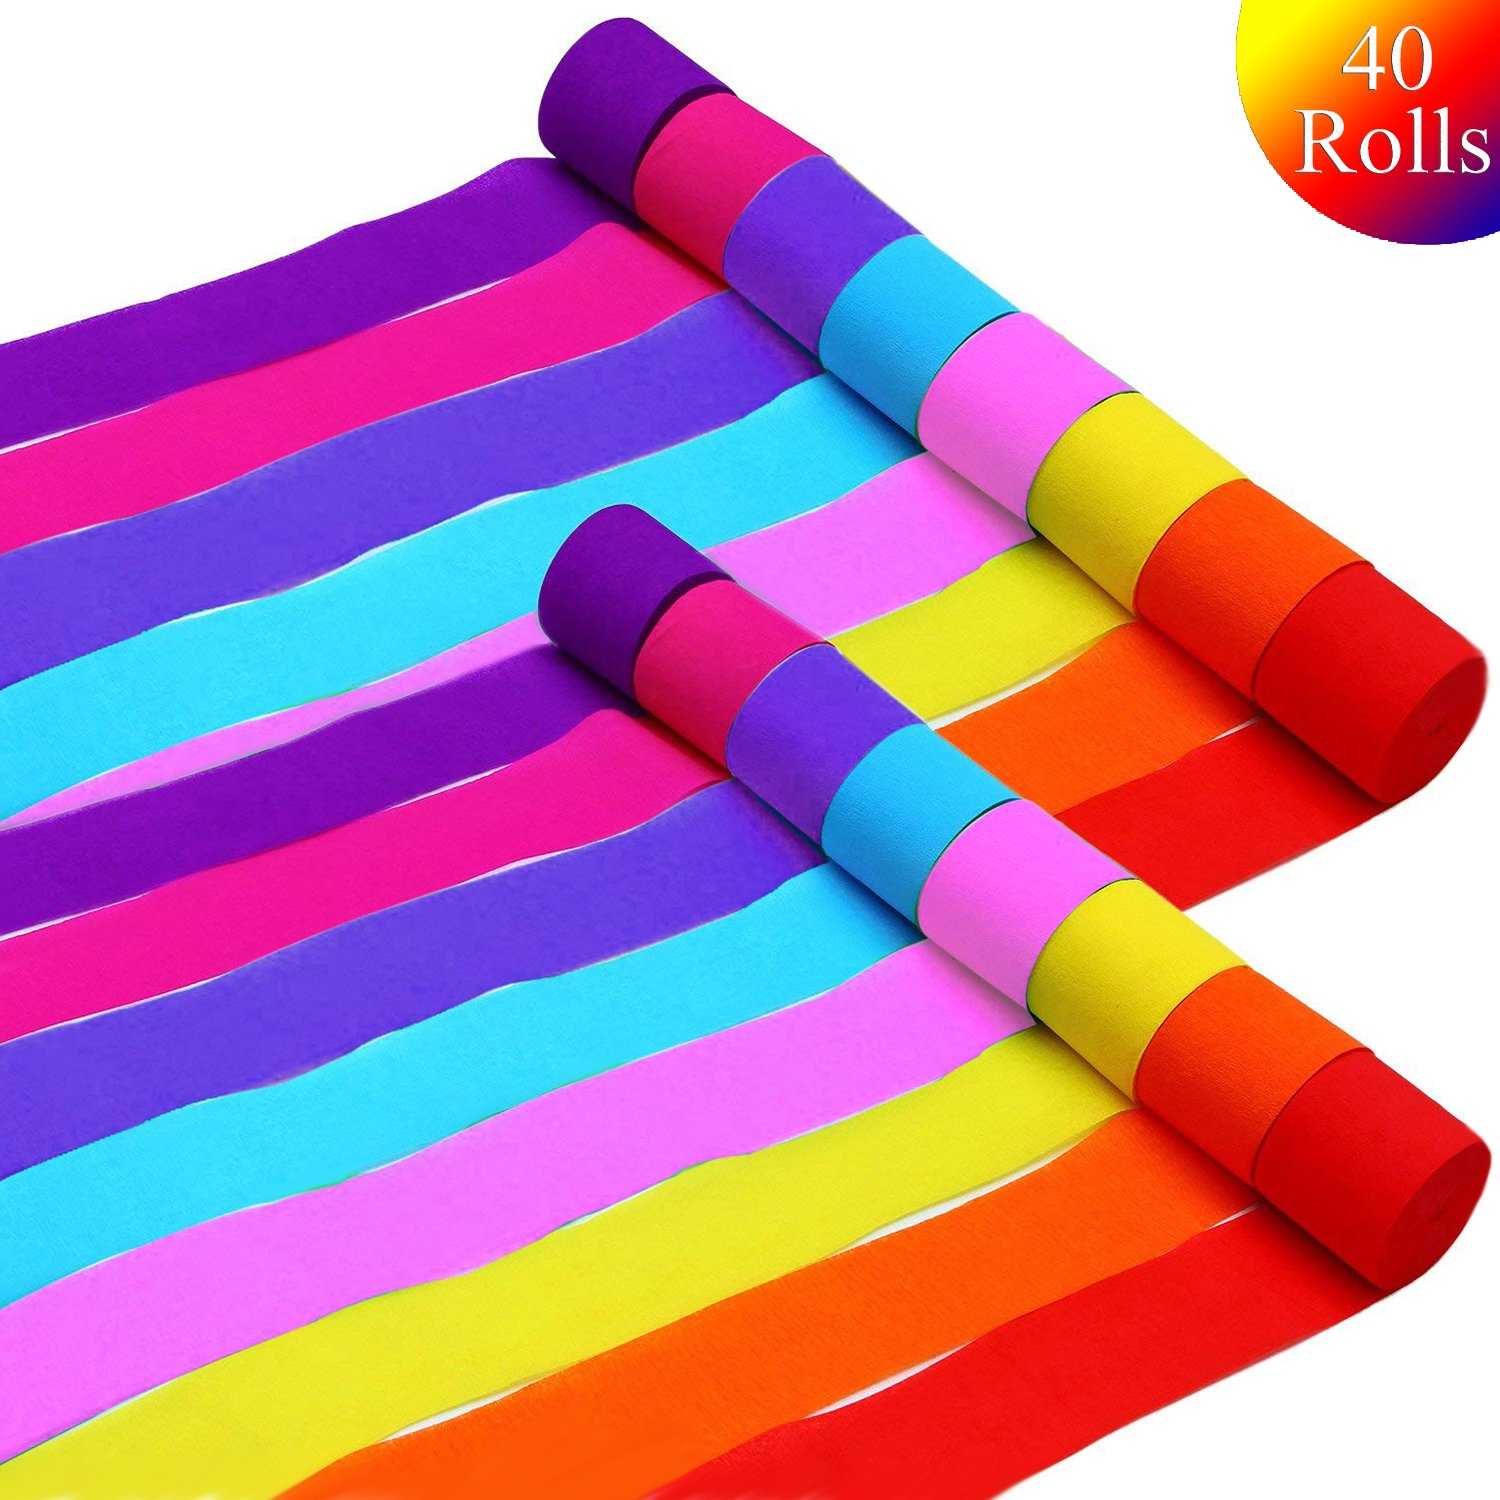 40 Rolls Crepe Paper Streamers, 8 Colors, for Birthday Party,Class Party,Family Gathering,Graduation Ceremony Decorations